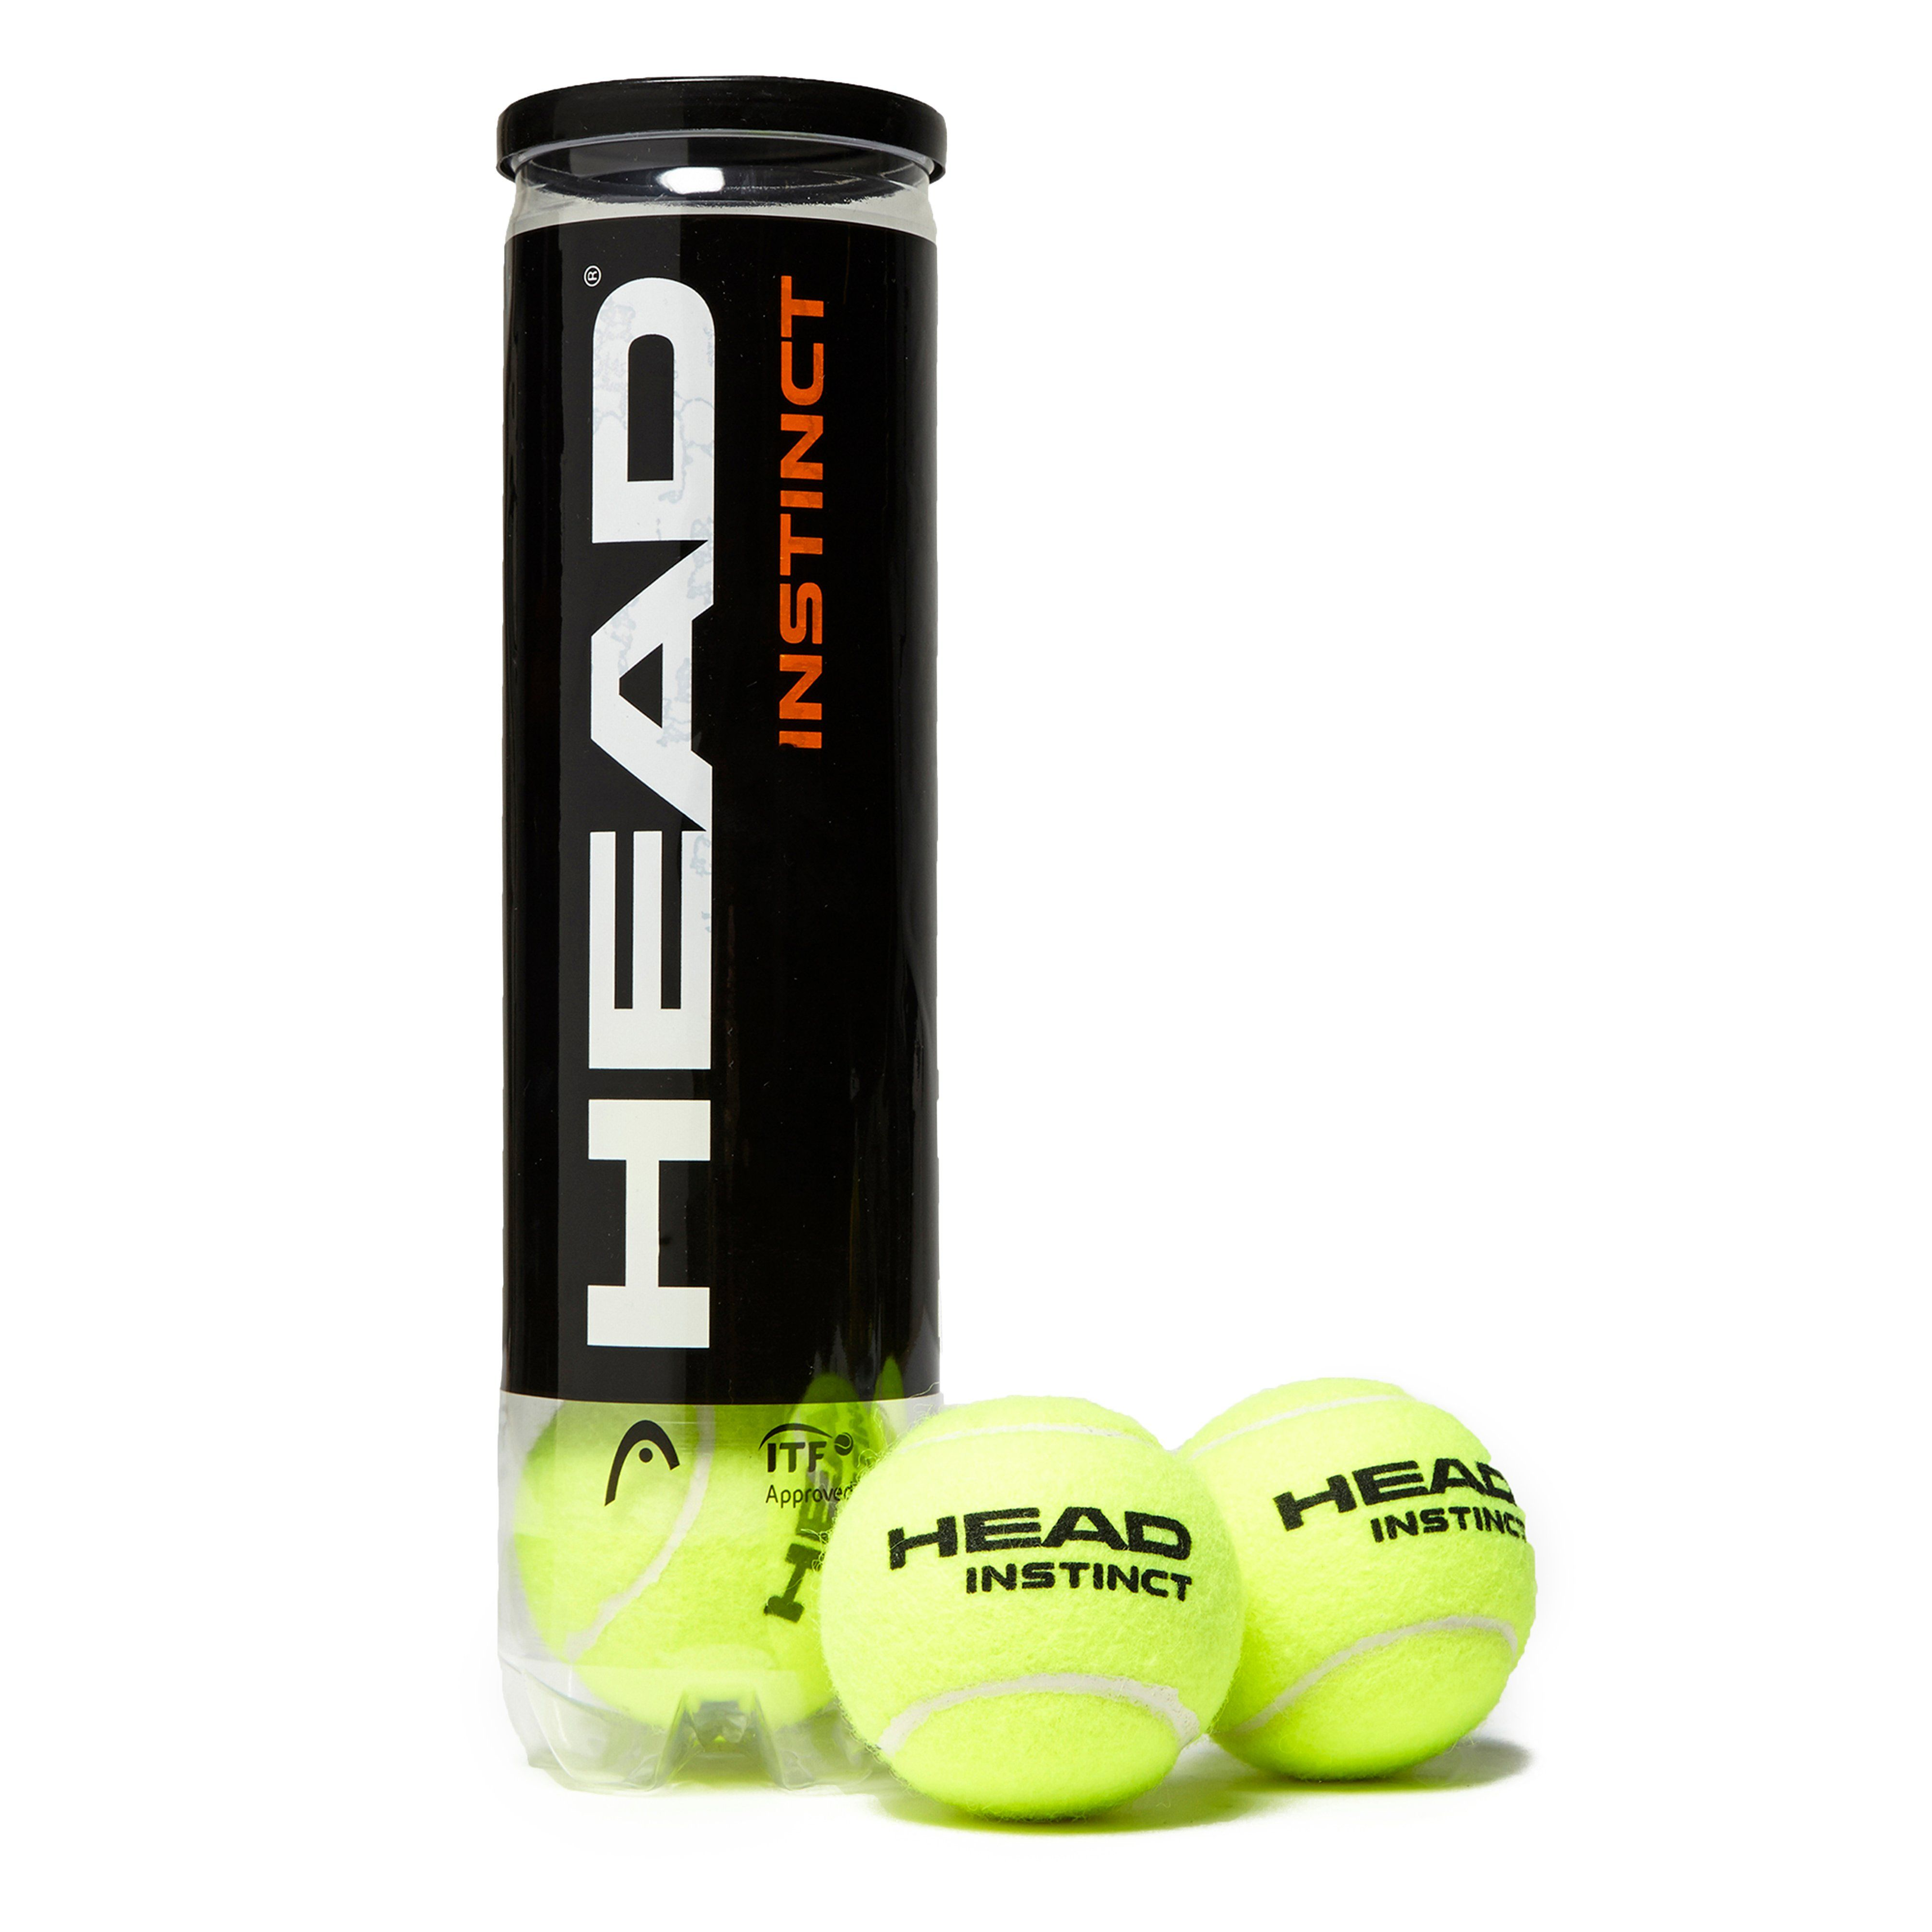 Head Instinct Tennis Balls (4 Ball Can)